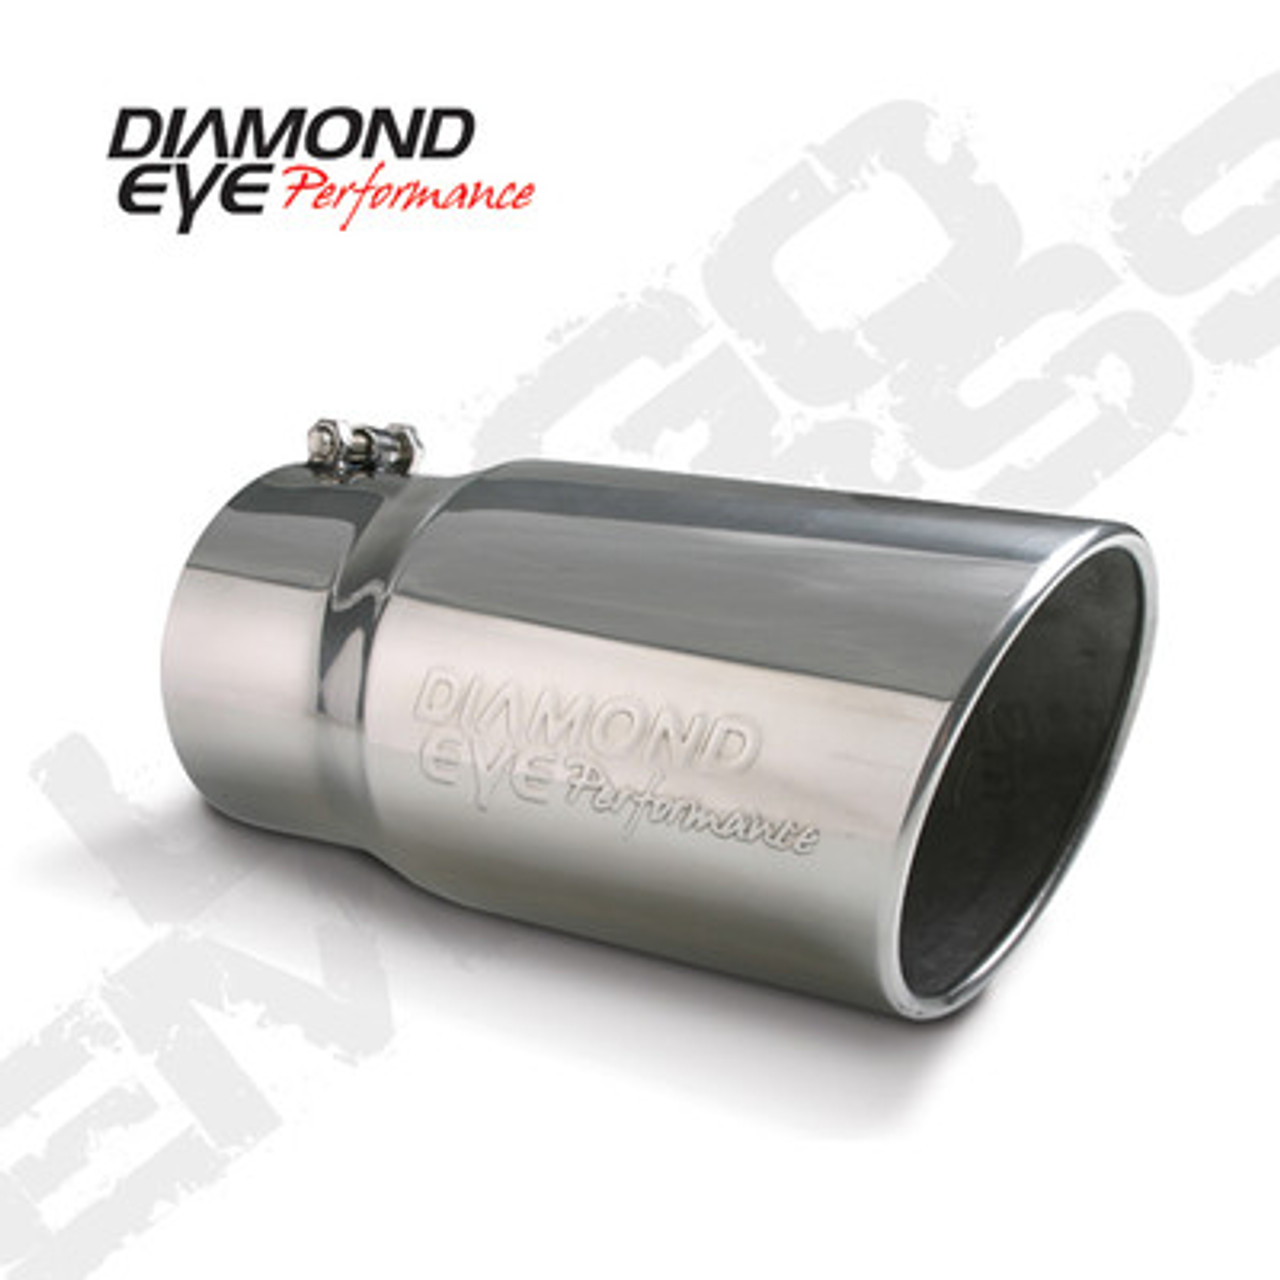 "DIAMOND EYE EXHAUST TIP  4"" INLET 5"" OUTLET STEEL LOGO EMBOSSED 12"" LONG BOLT-ON - 4512BRA-DE"